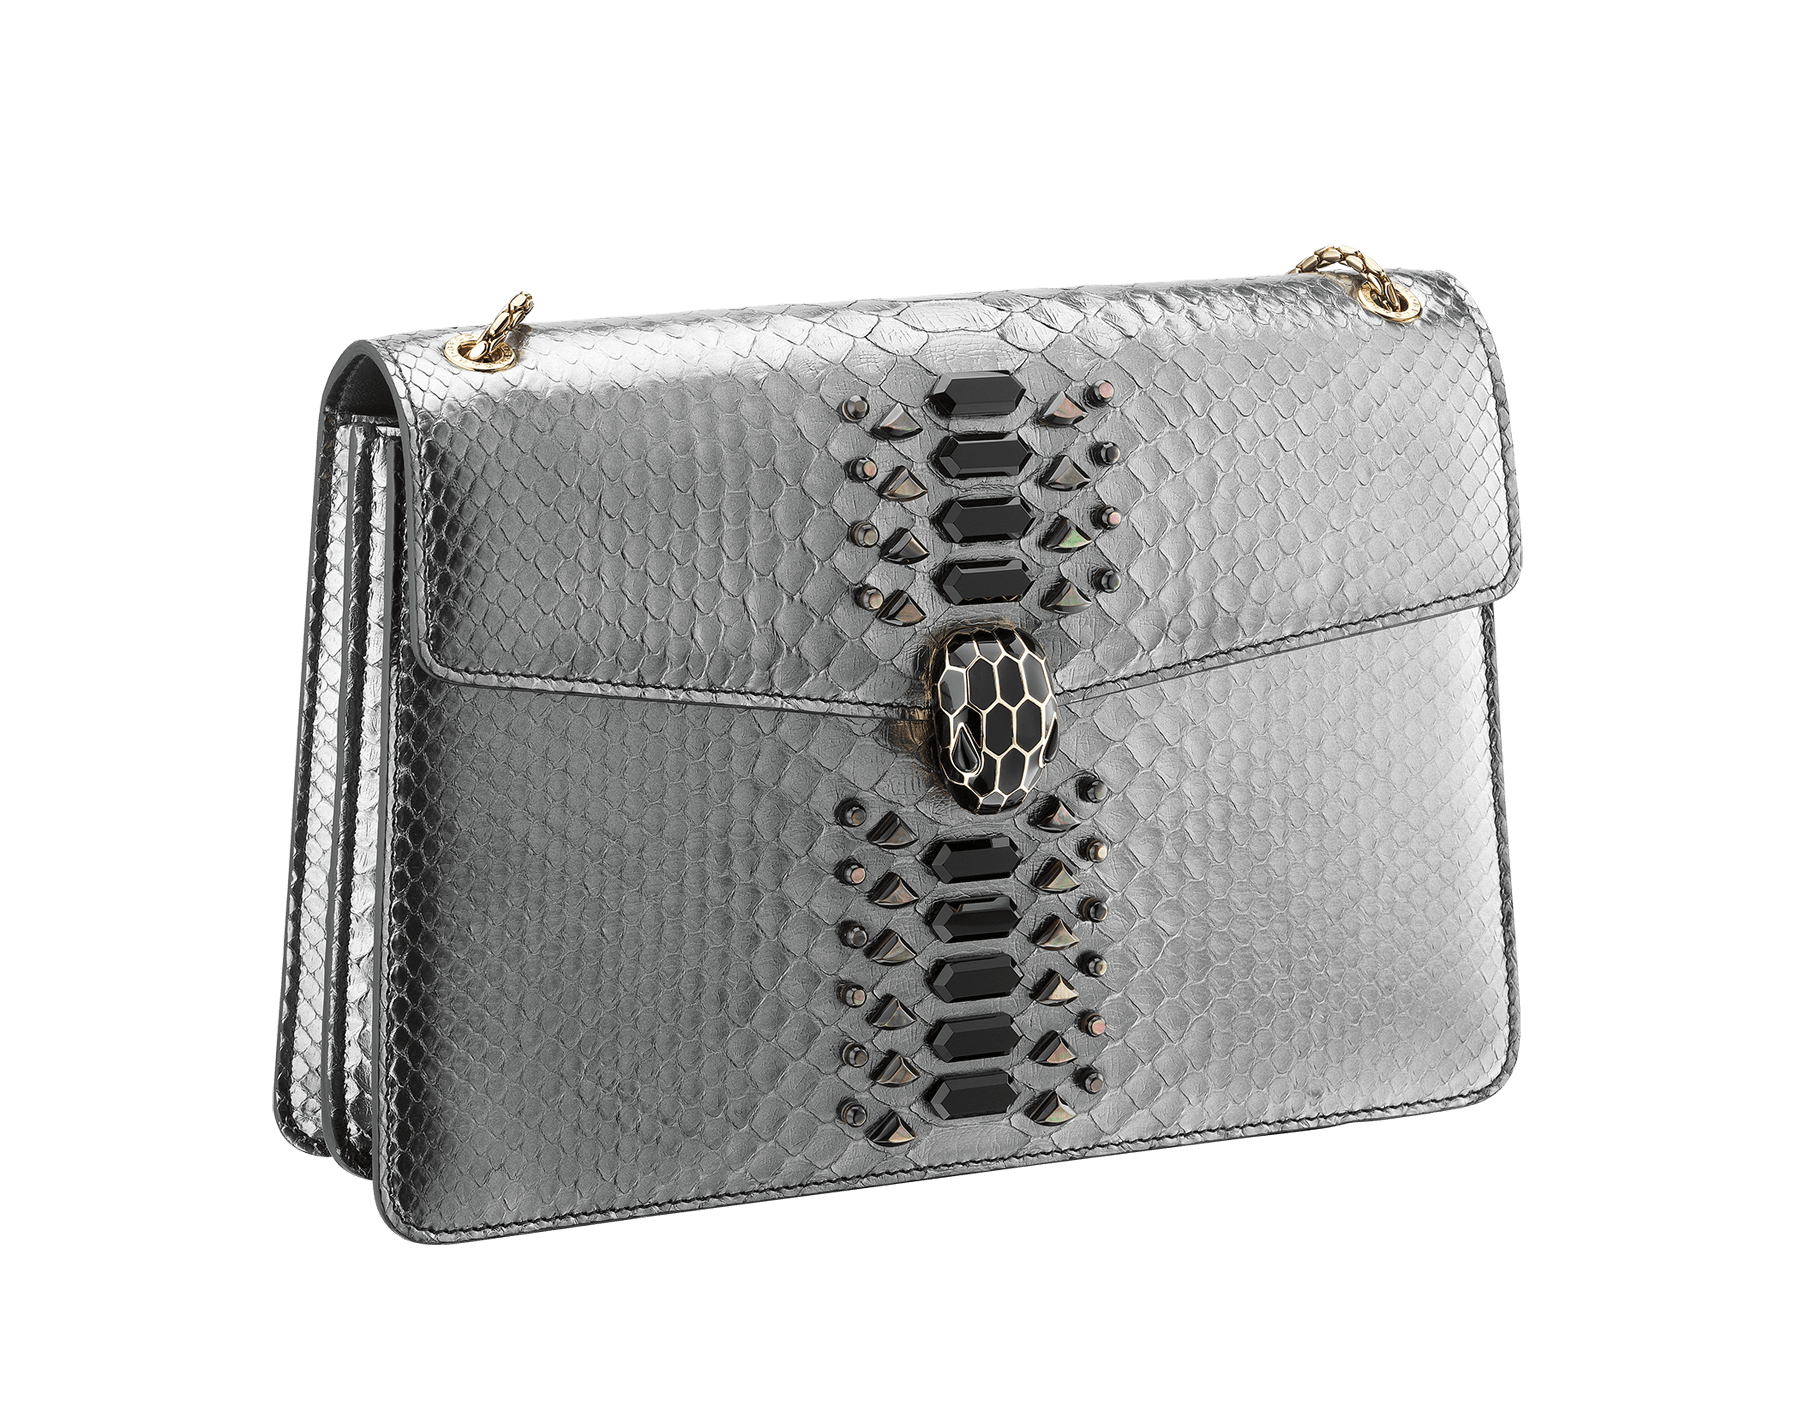 """""""Serpenti Forever"""" shoulder bag black Diamond Glam python skin. Iconic snake head closure in palladium plated brass enriched with black enamel and black onyx eyes. 521-Pc image 2"""